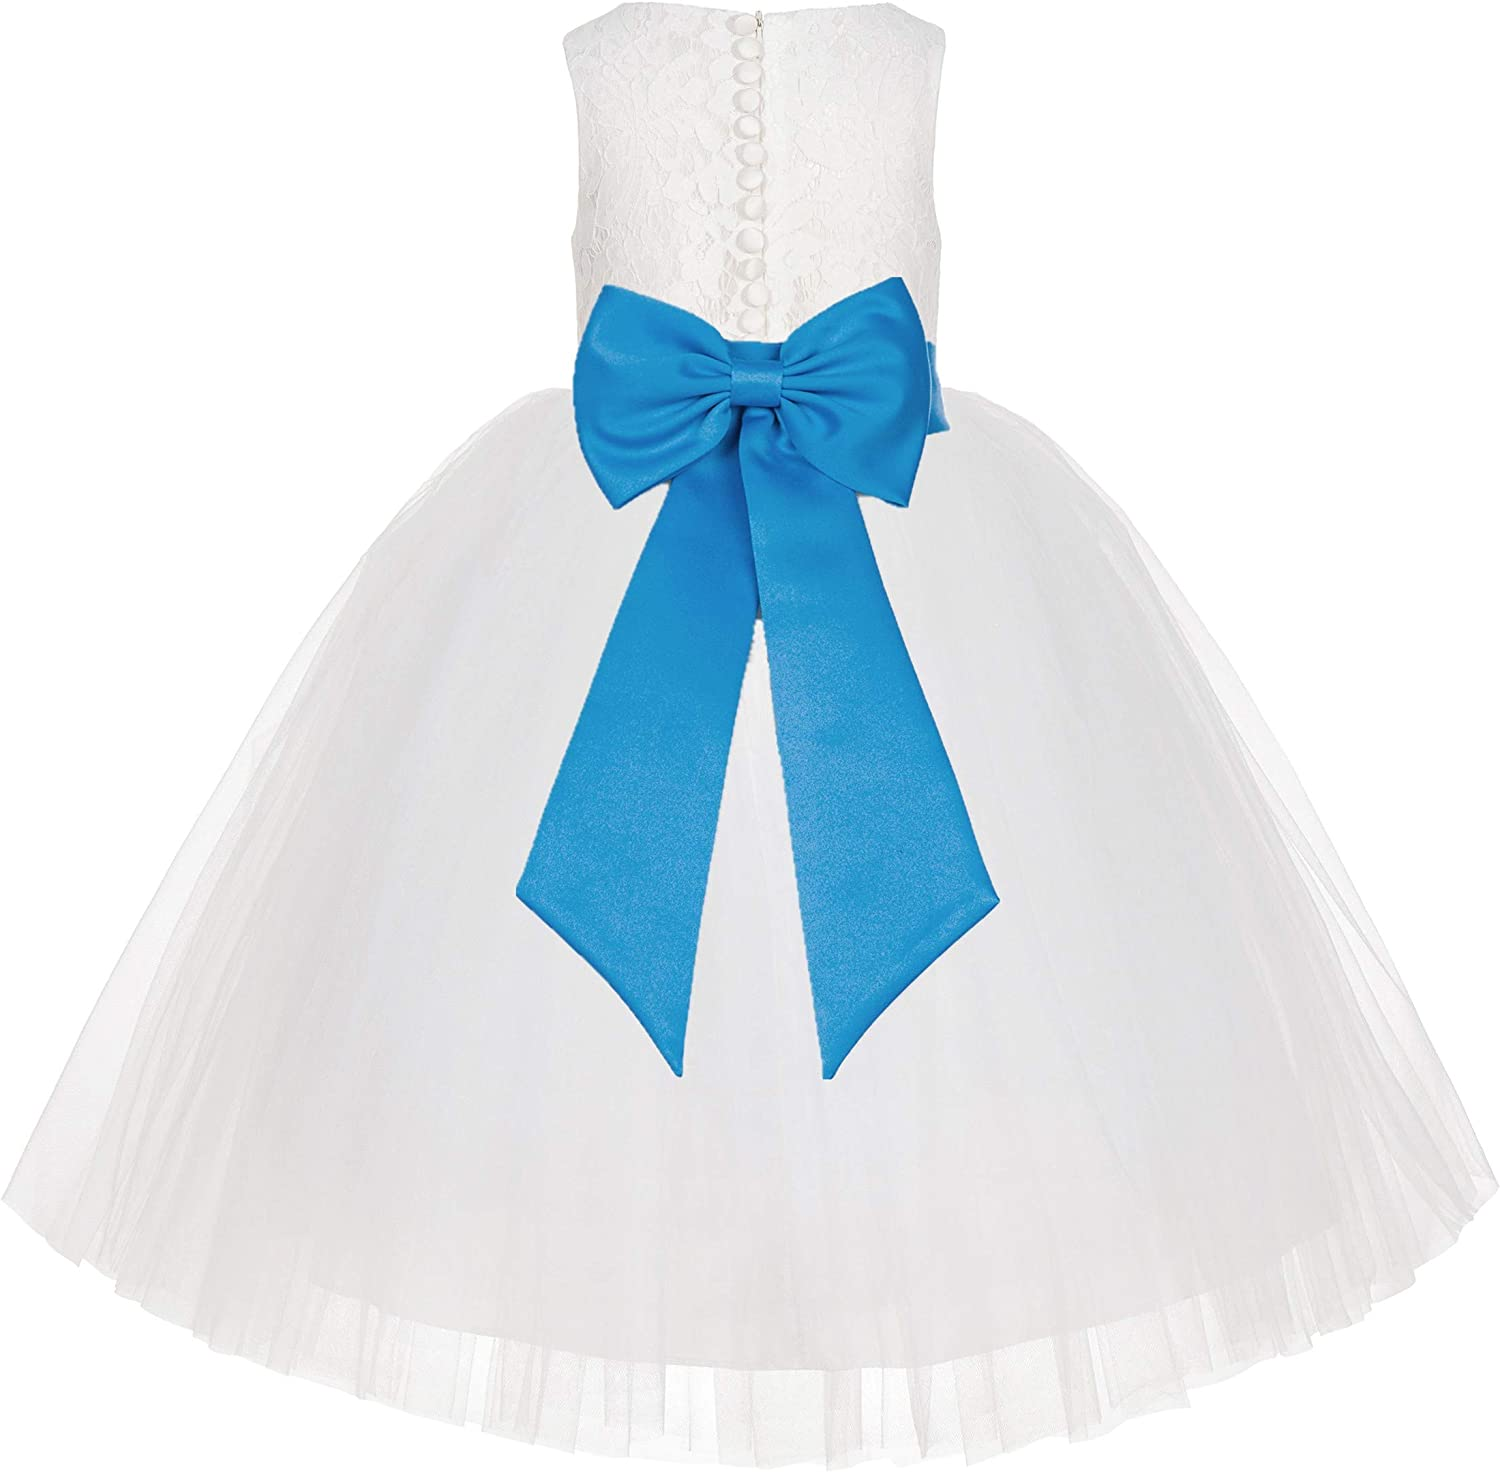 Ivory Floral Lace Flower Girl Dress Junior Bridesmaid Ceremonial Gown LG7